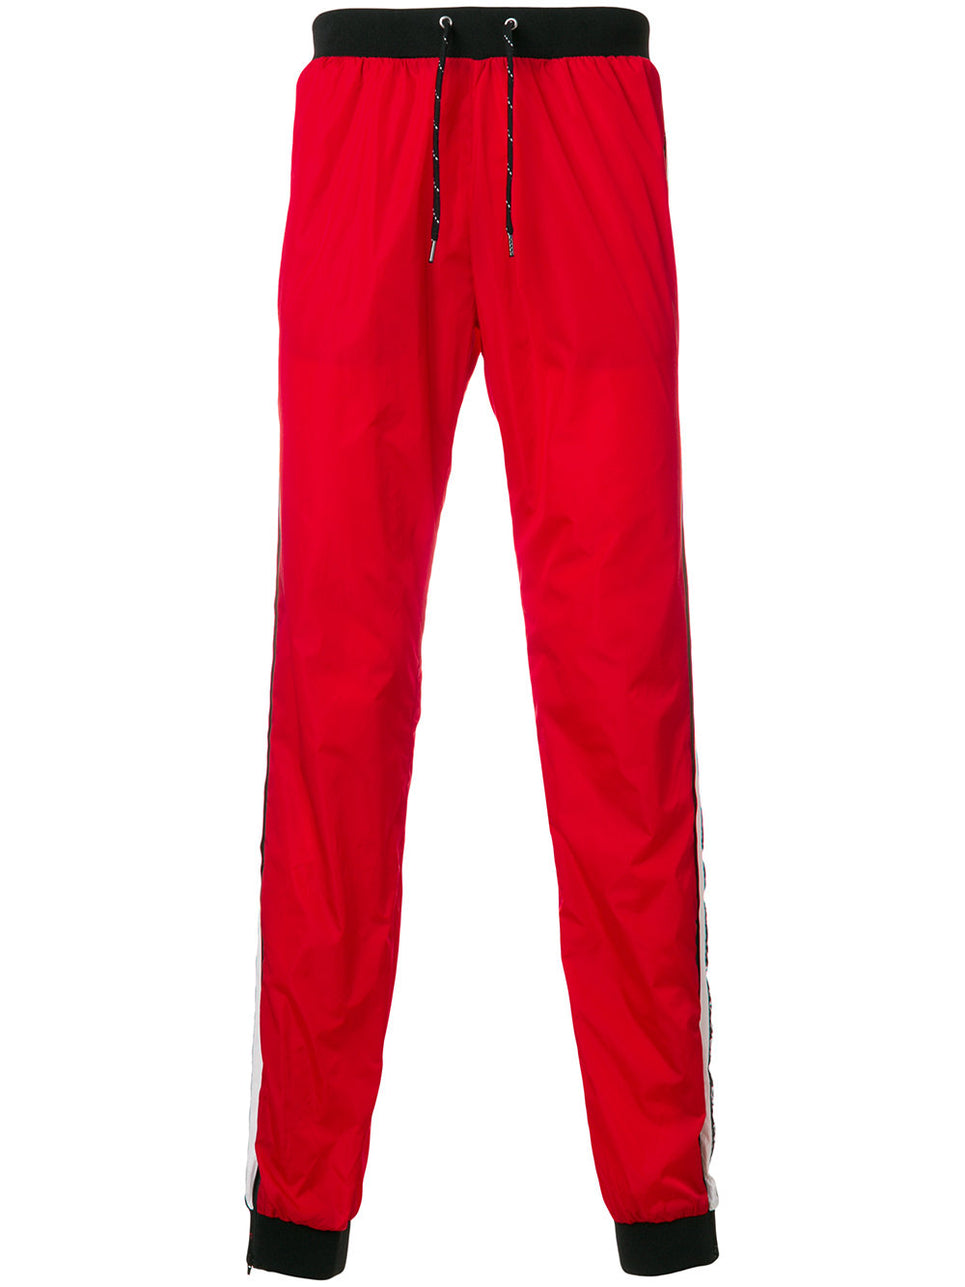 Andrea Crews Red Pant